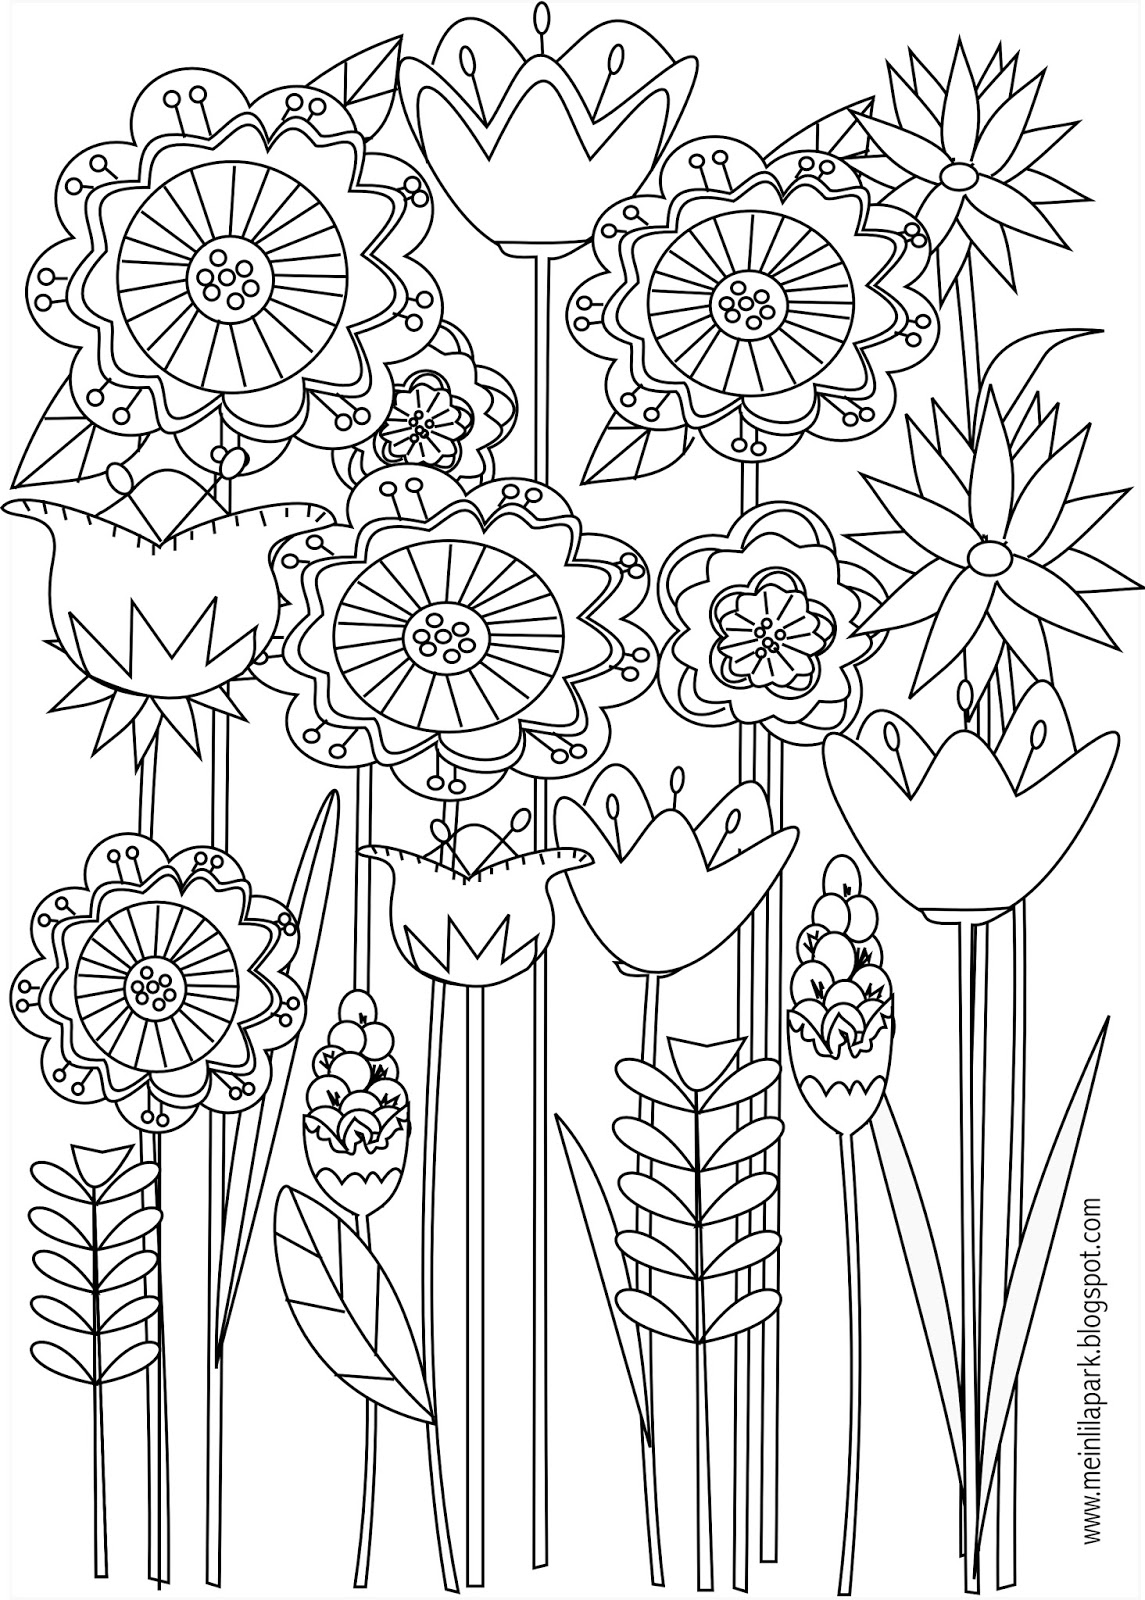 flower printable coloring pages detailed flower coloring pages to download and print for free coloring flower printable pages